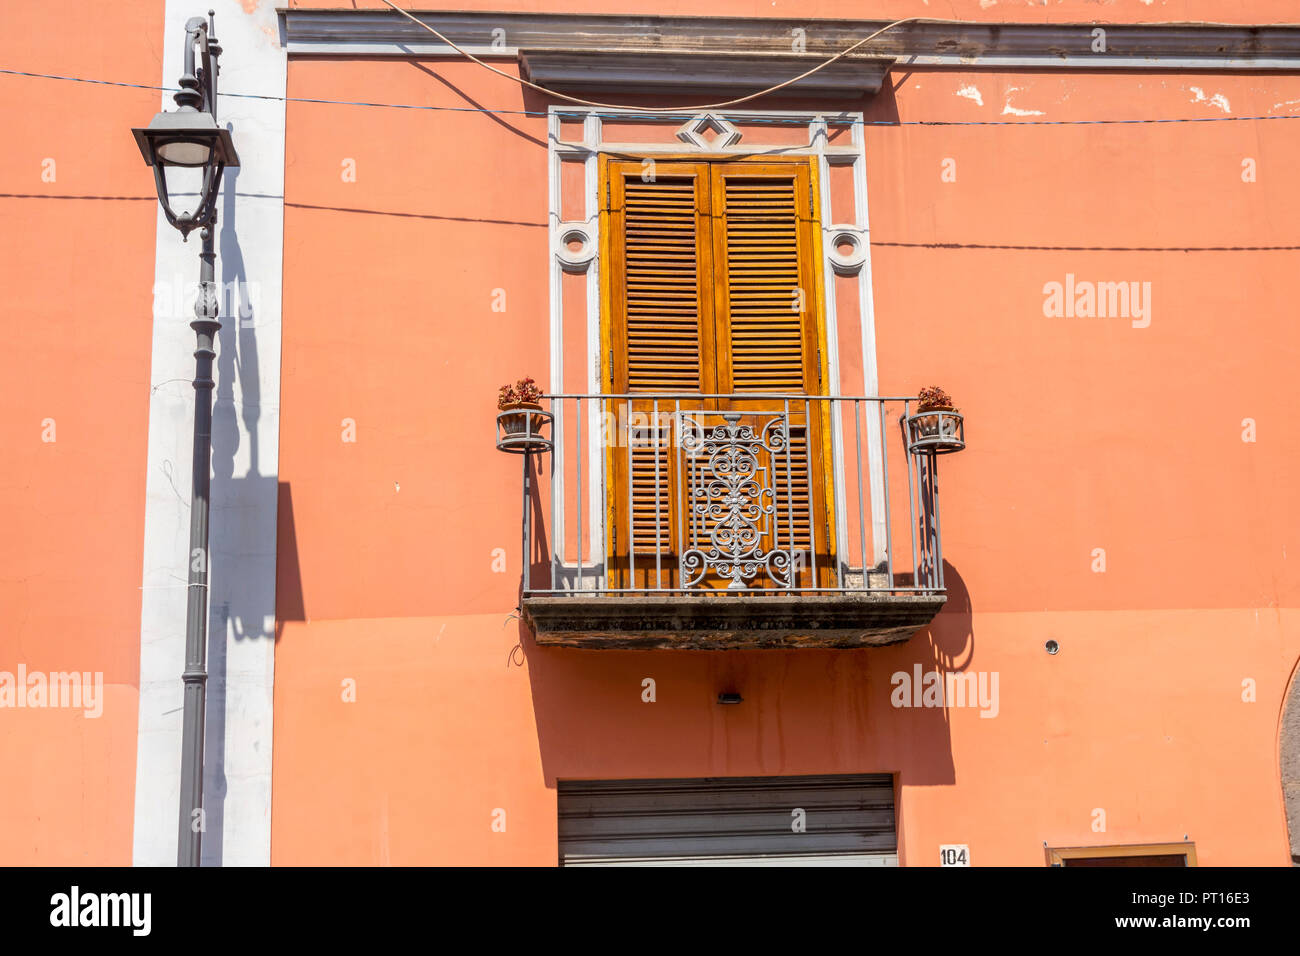 Traditional Italian door with shutters, metal balcony Italy, orange brown wall over shop, old fashioned concept, ornate,  wooden shutter doors Stock Photo